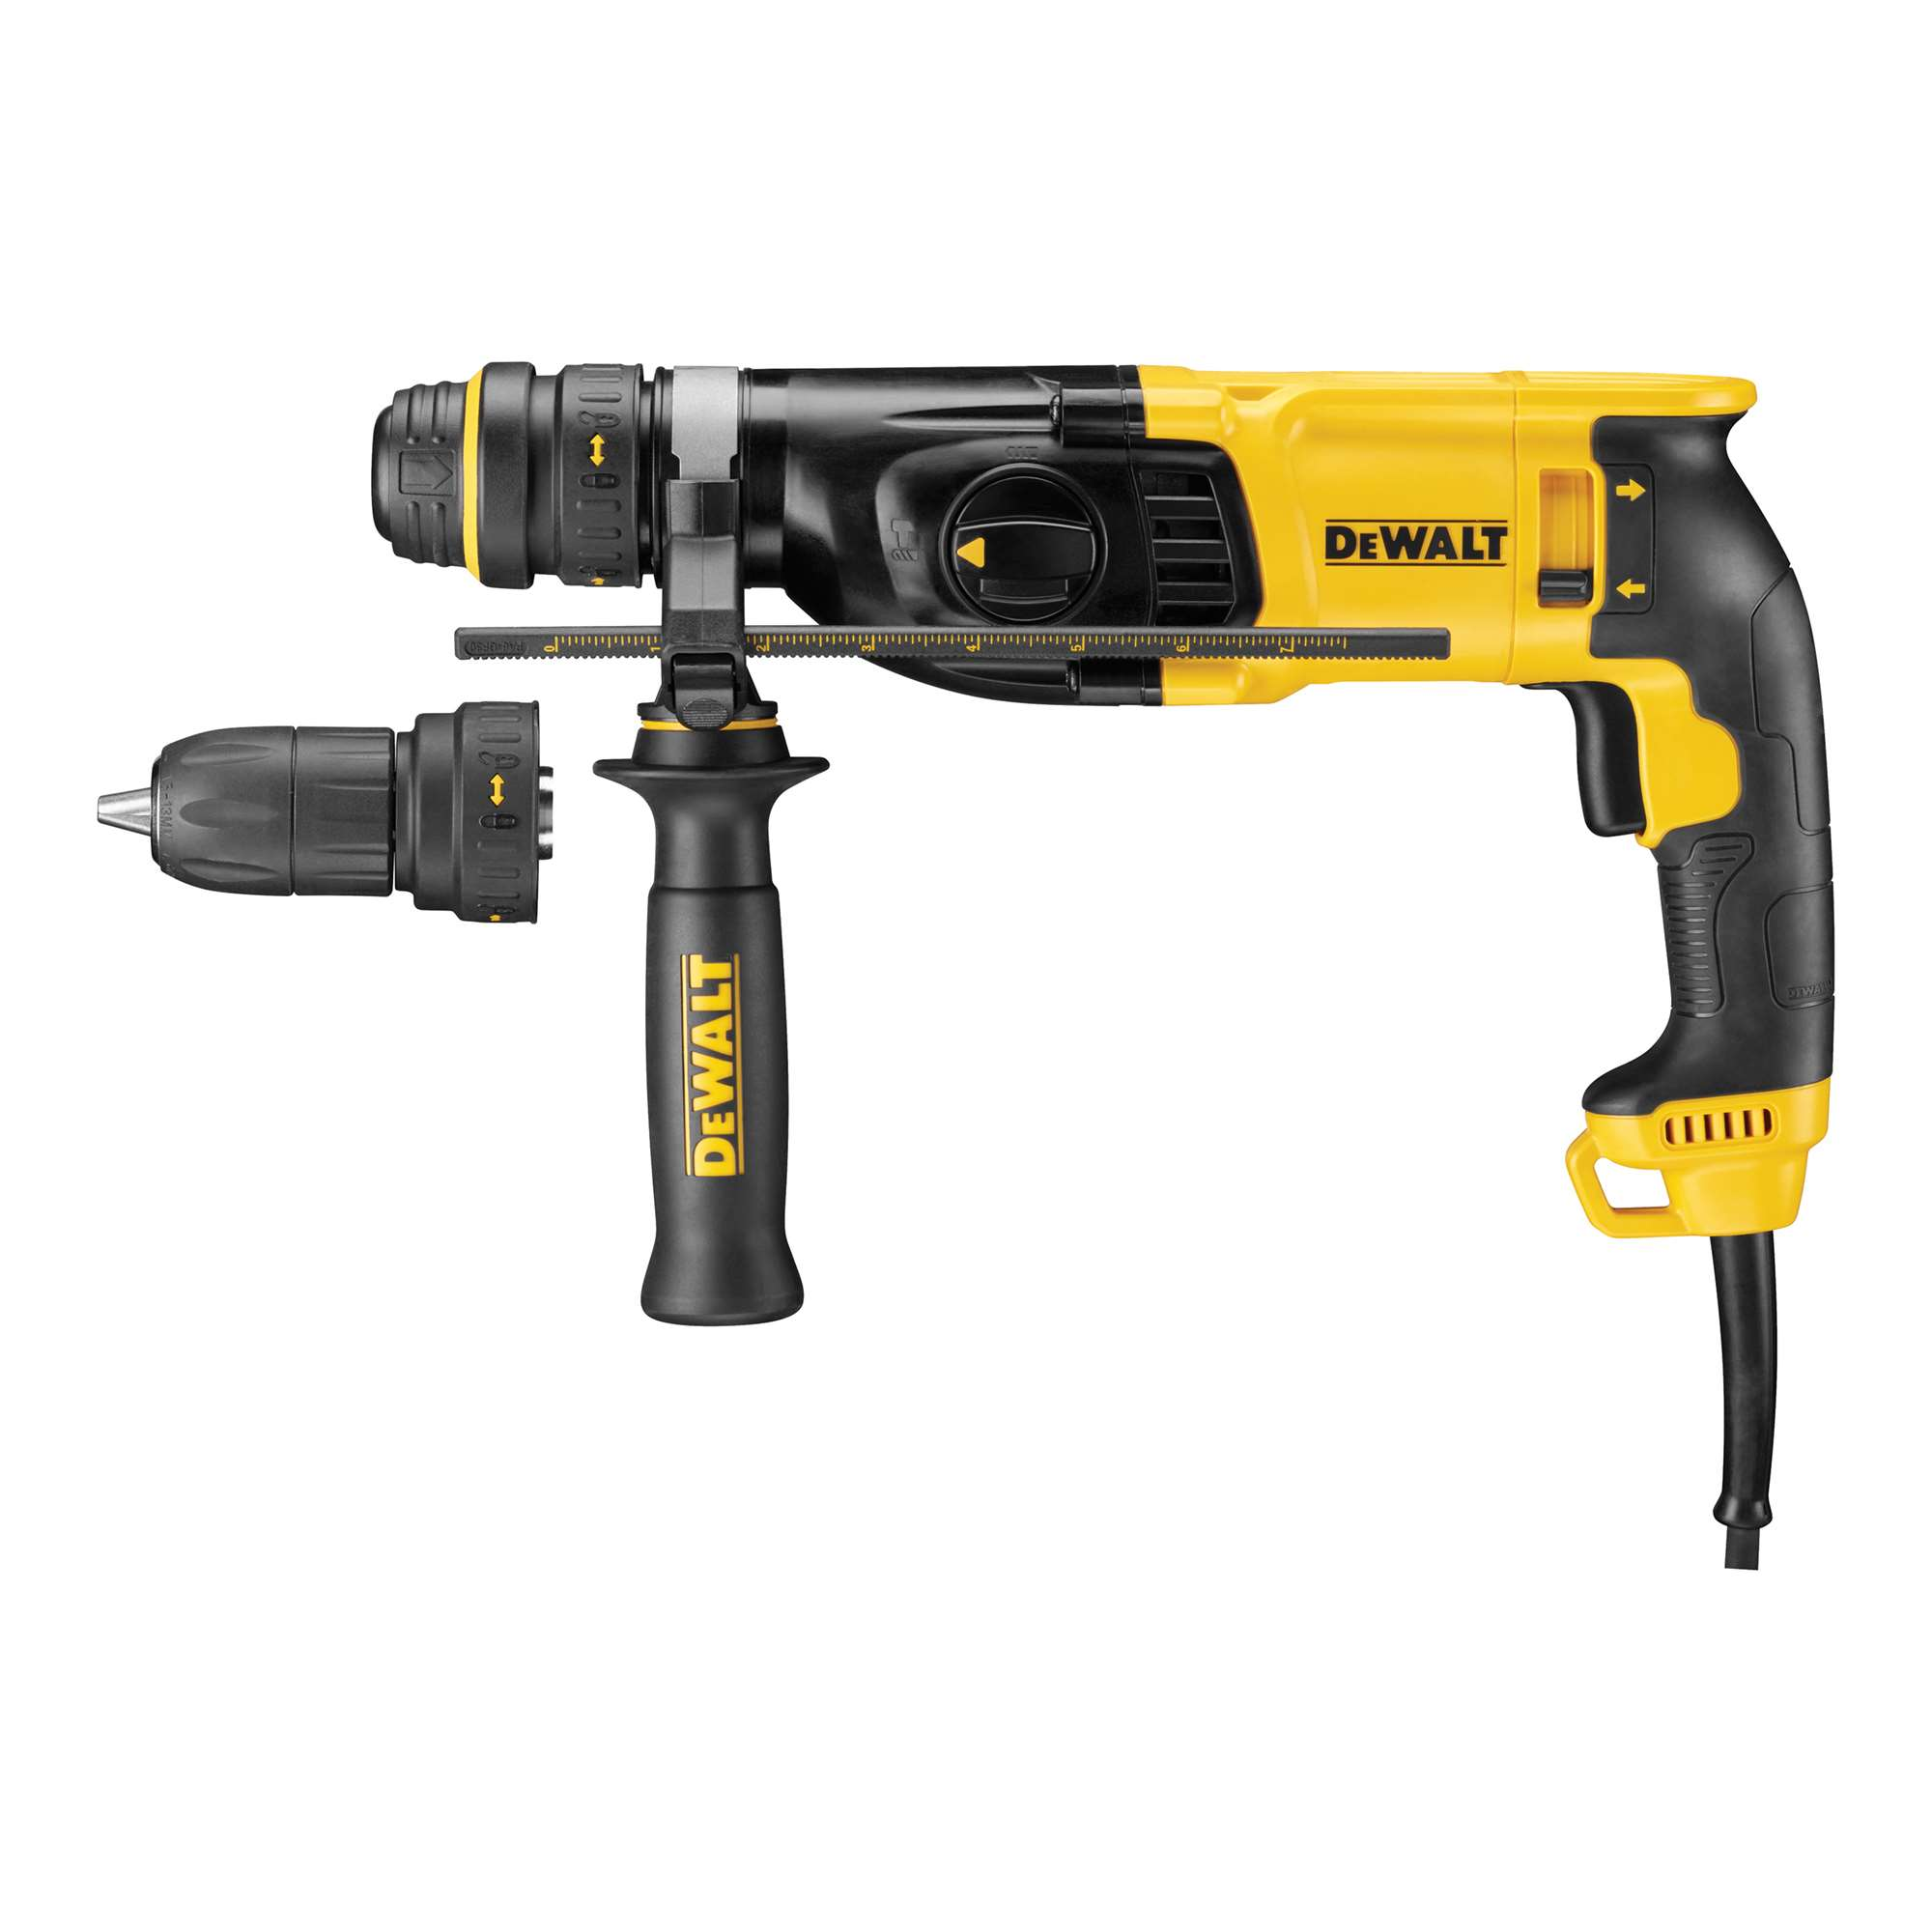 Image Result For How To Remove Chuck From Dewalt Drill